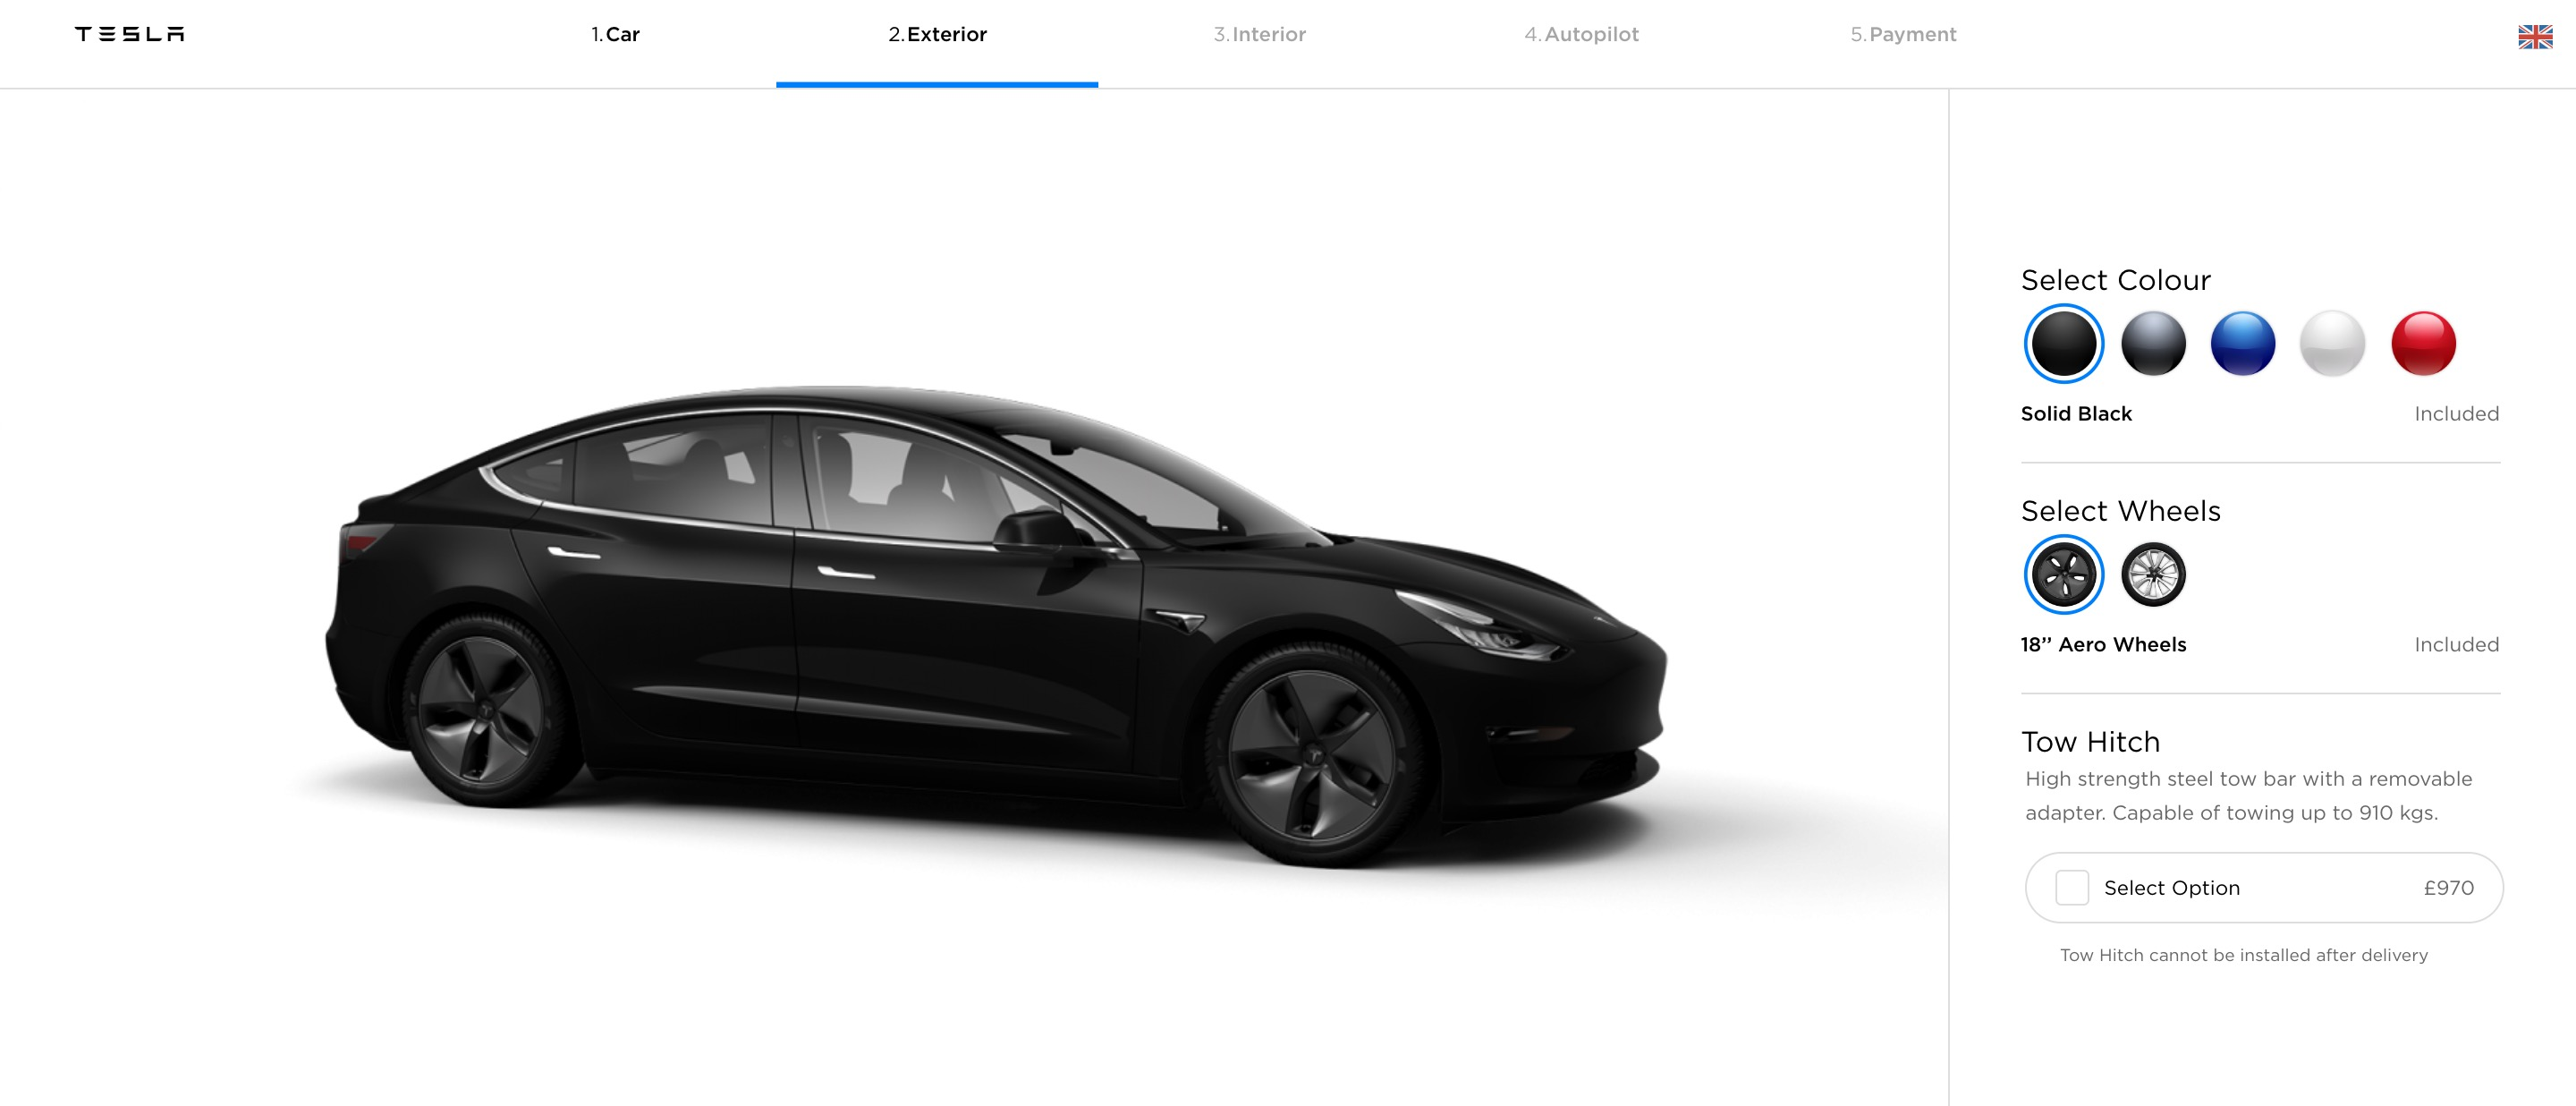 Tesla launches tow hitch for Model 3 - Electrek